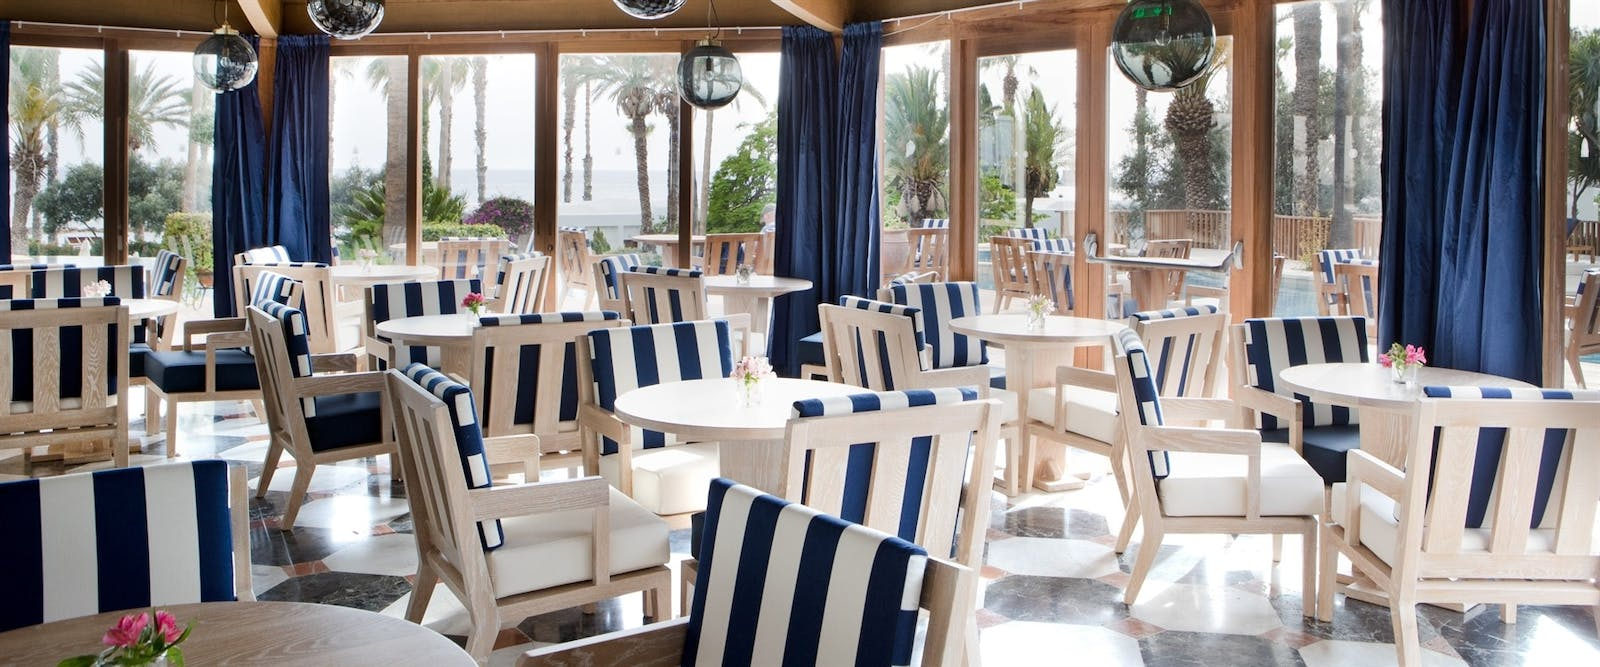 Asteras Restaurant at Annabelle, Paphos, Cyprus